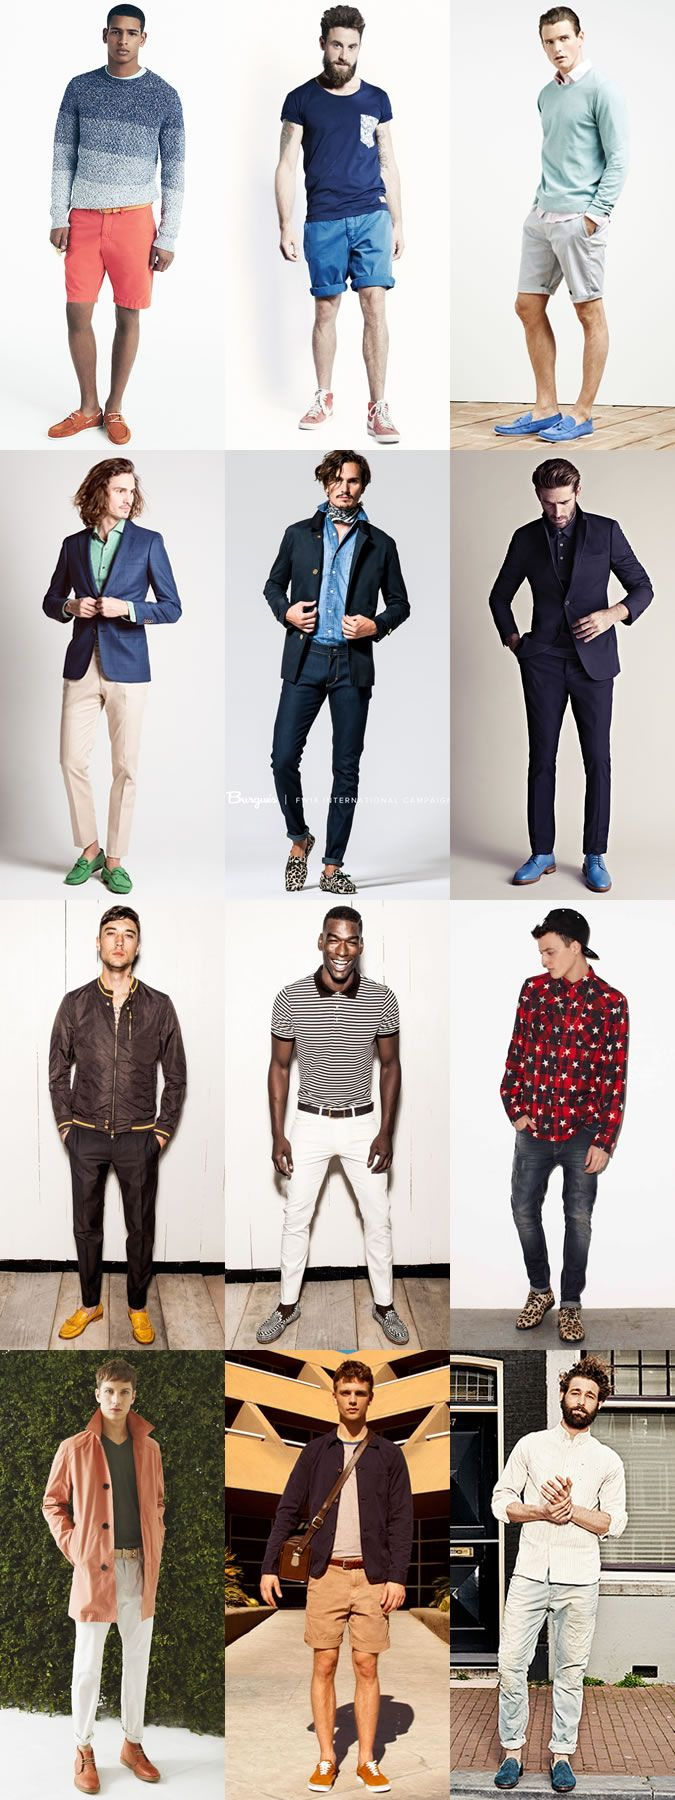 6 Statement Menswear Pieces for Spring/Summer 2015: 3. Men's Coloured and Printed Footwear Lookbook Inspiration